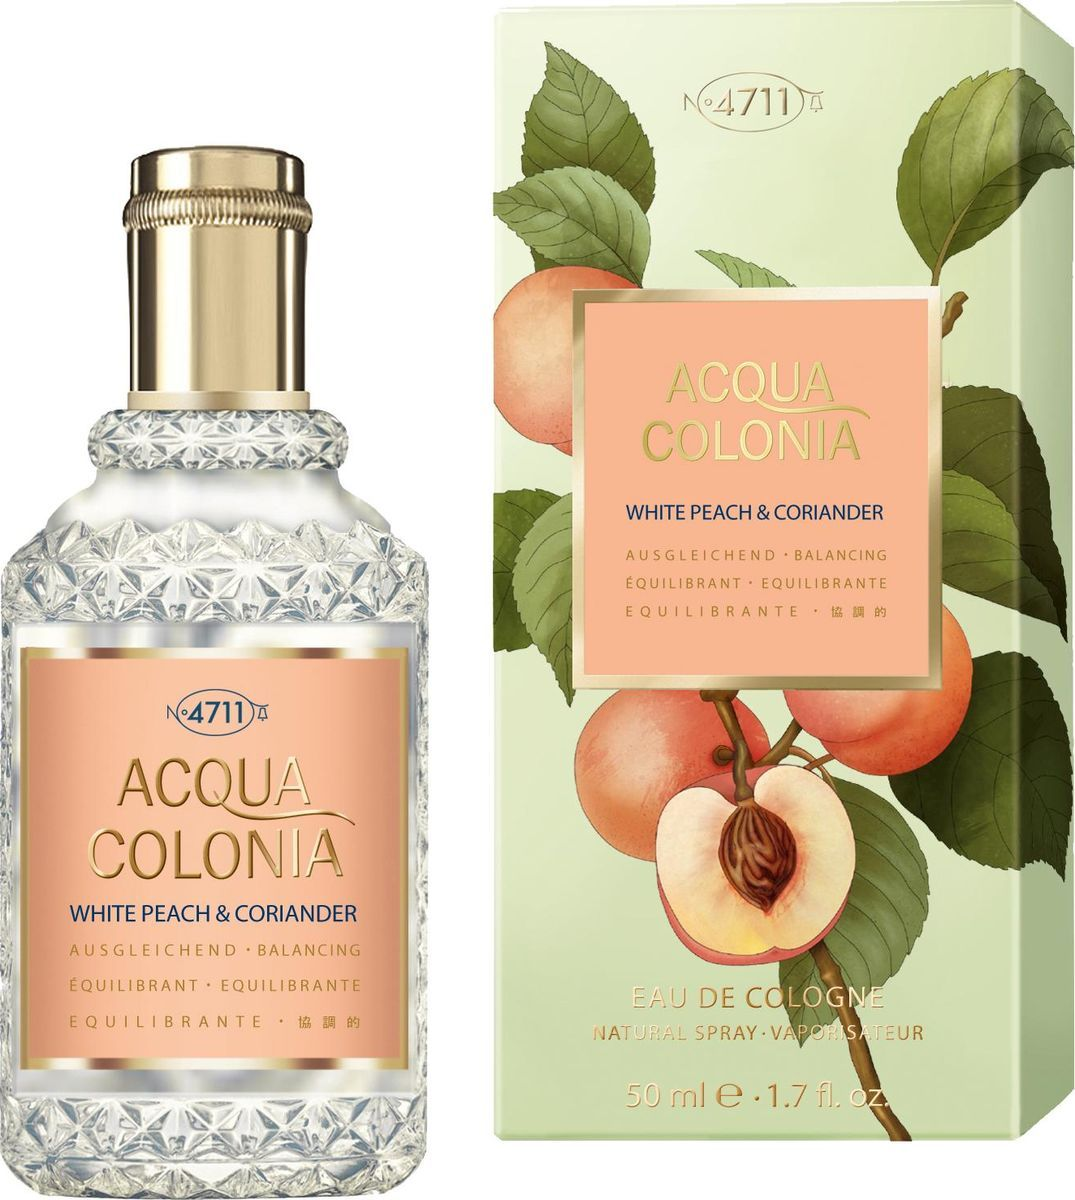 Одеколон унисекс Maurer and Wirtz 4711 Acqua Colonia White Peach and Coriander  - edc 50 ml